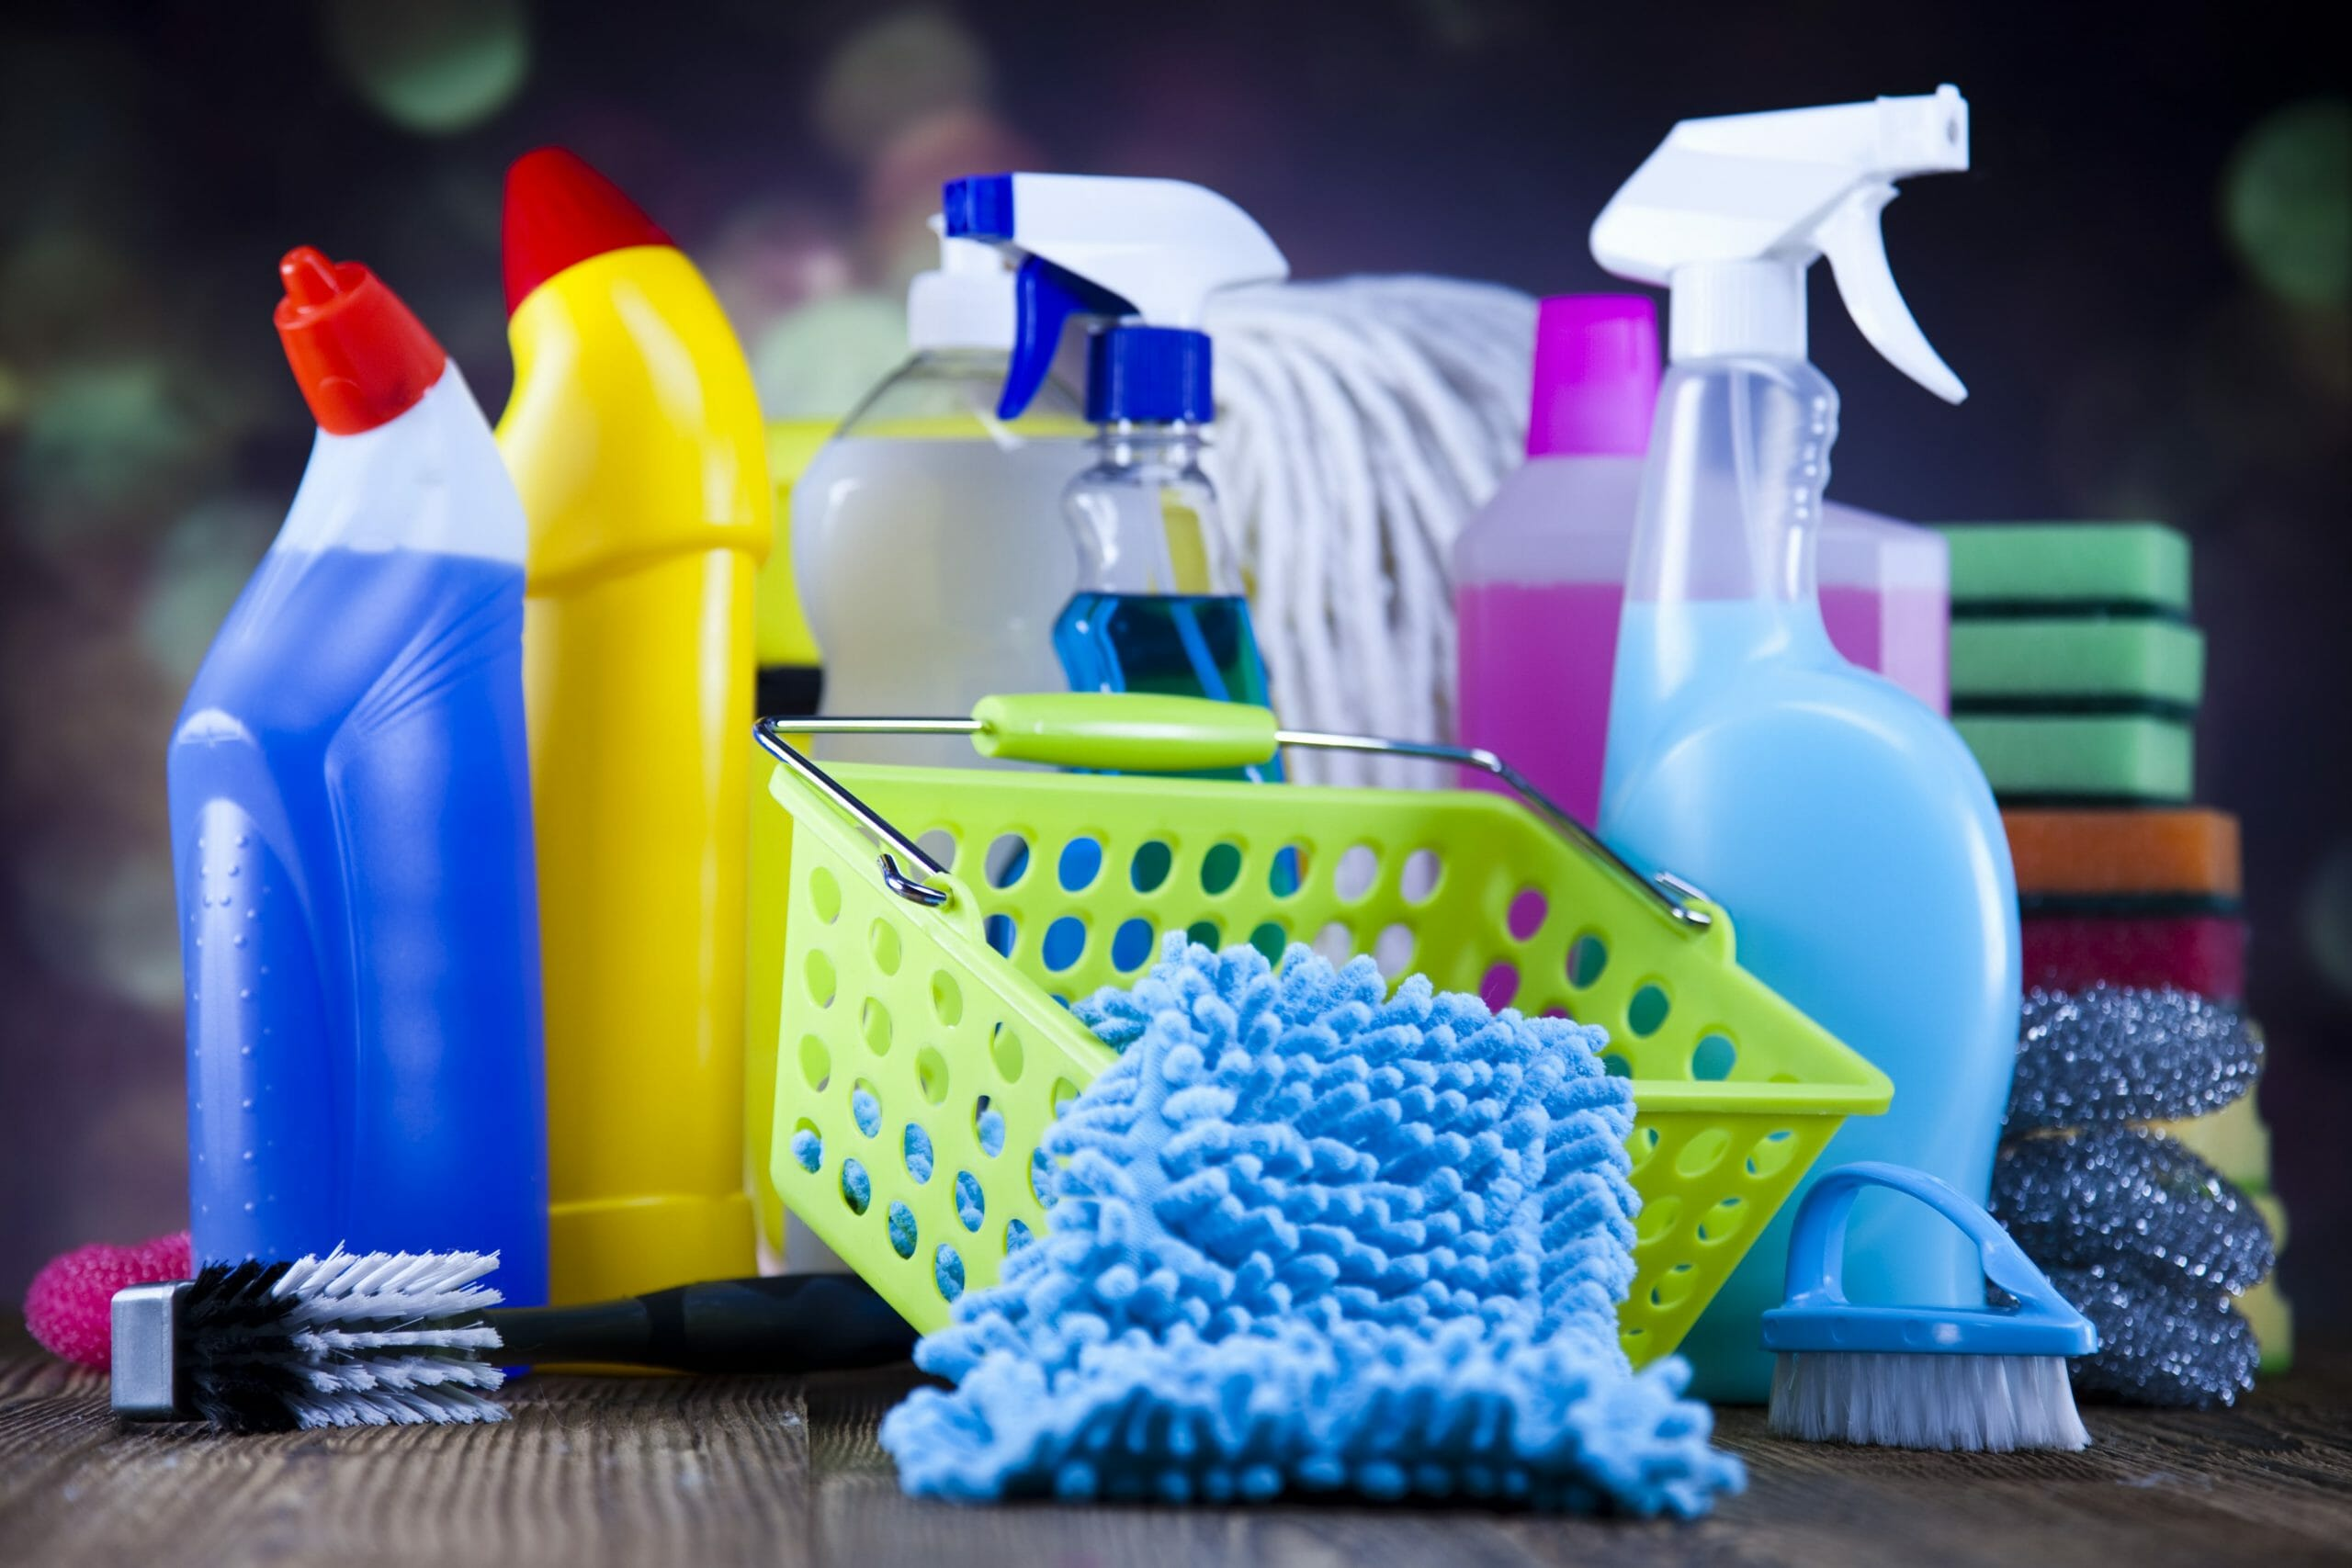 I need a maid to clean my home step by step guide   Home Cleaning ...